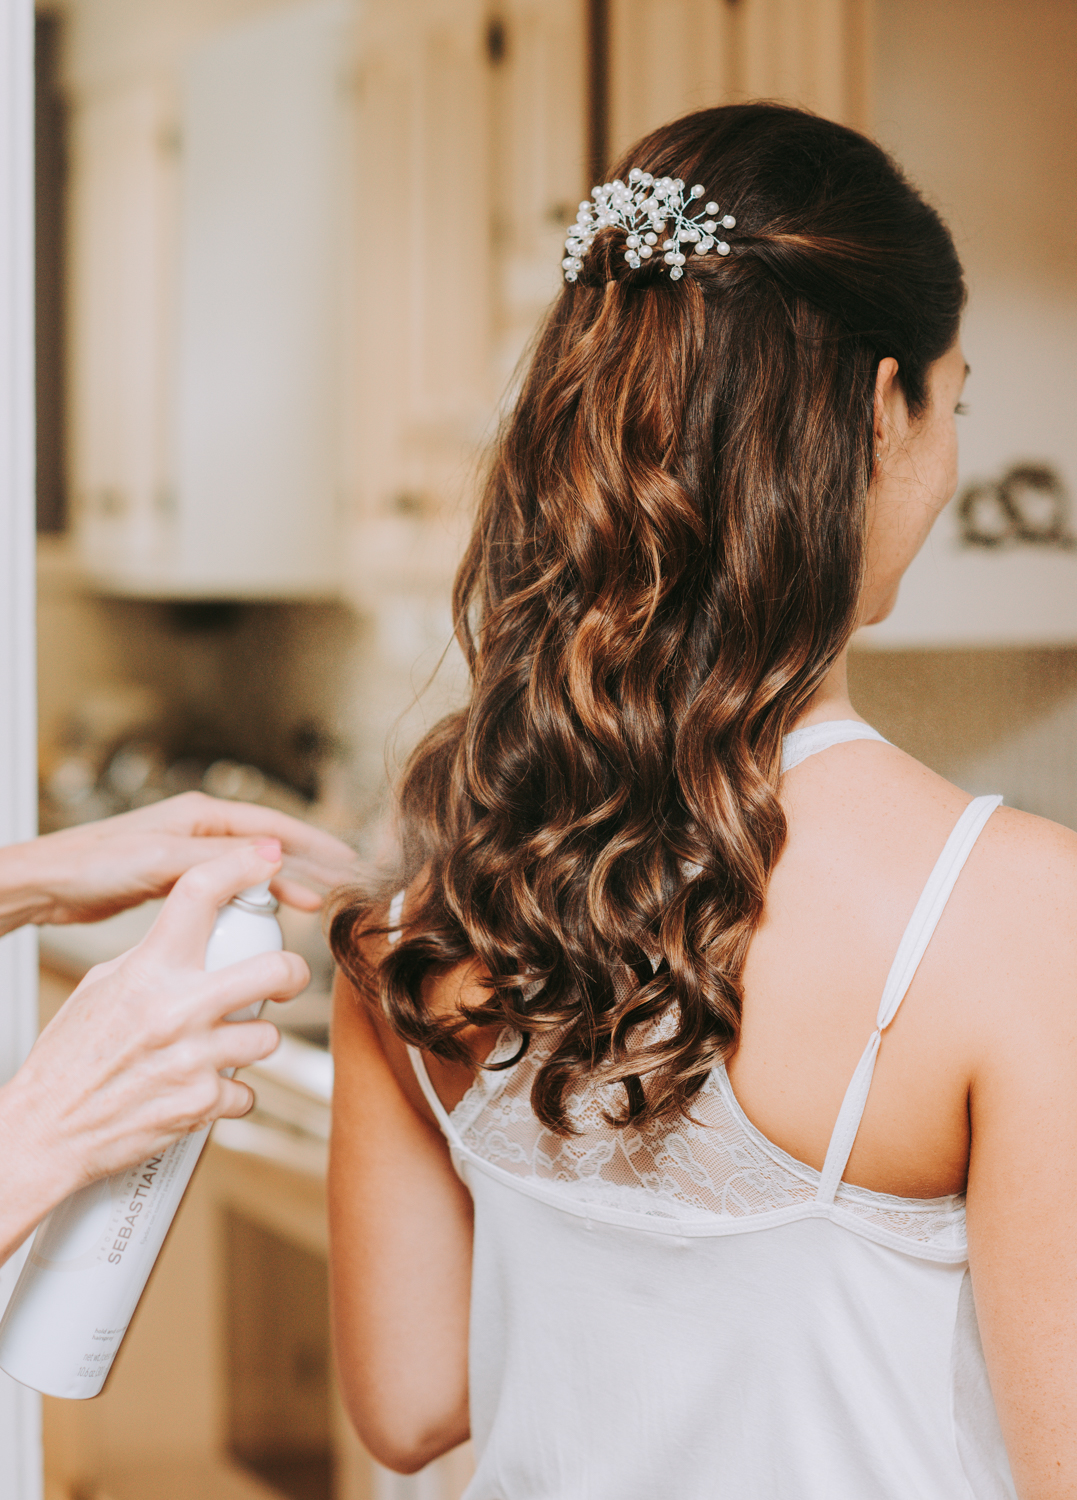 maureen_evan_wedding_marthas_vineyard_getting_ready-2893.jpg